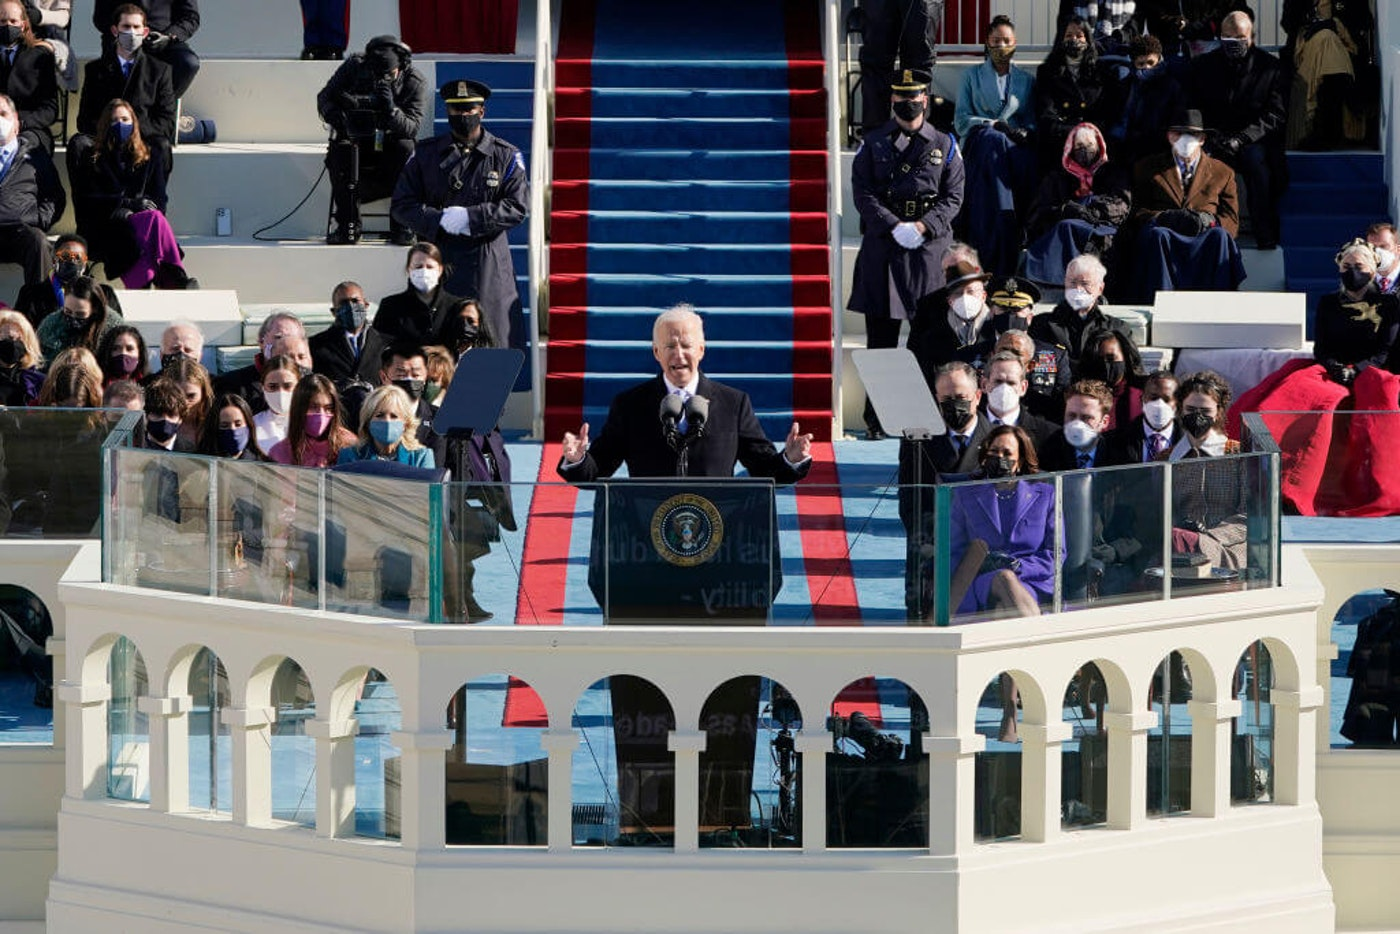 President Joe Biden speaks during the the 59th inaugural ceremony on the West Front of the U.S. Capitol on January 20, 2021 in Washington, DC.  During today's inauguration ceremony Joe Biden becomes the 46th president of the United States. (Photo by Patrick Semansky-Pool/Getty Images)